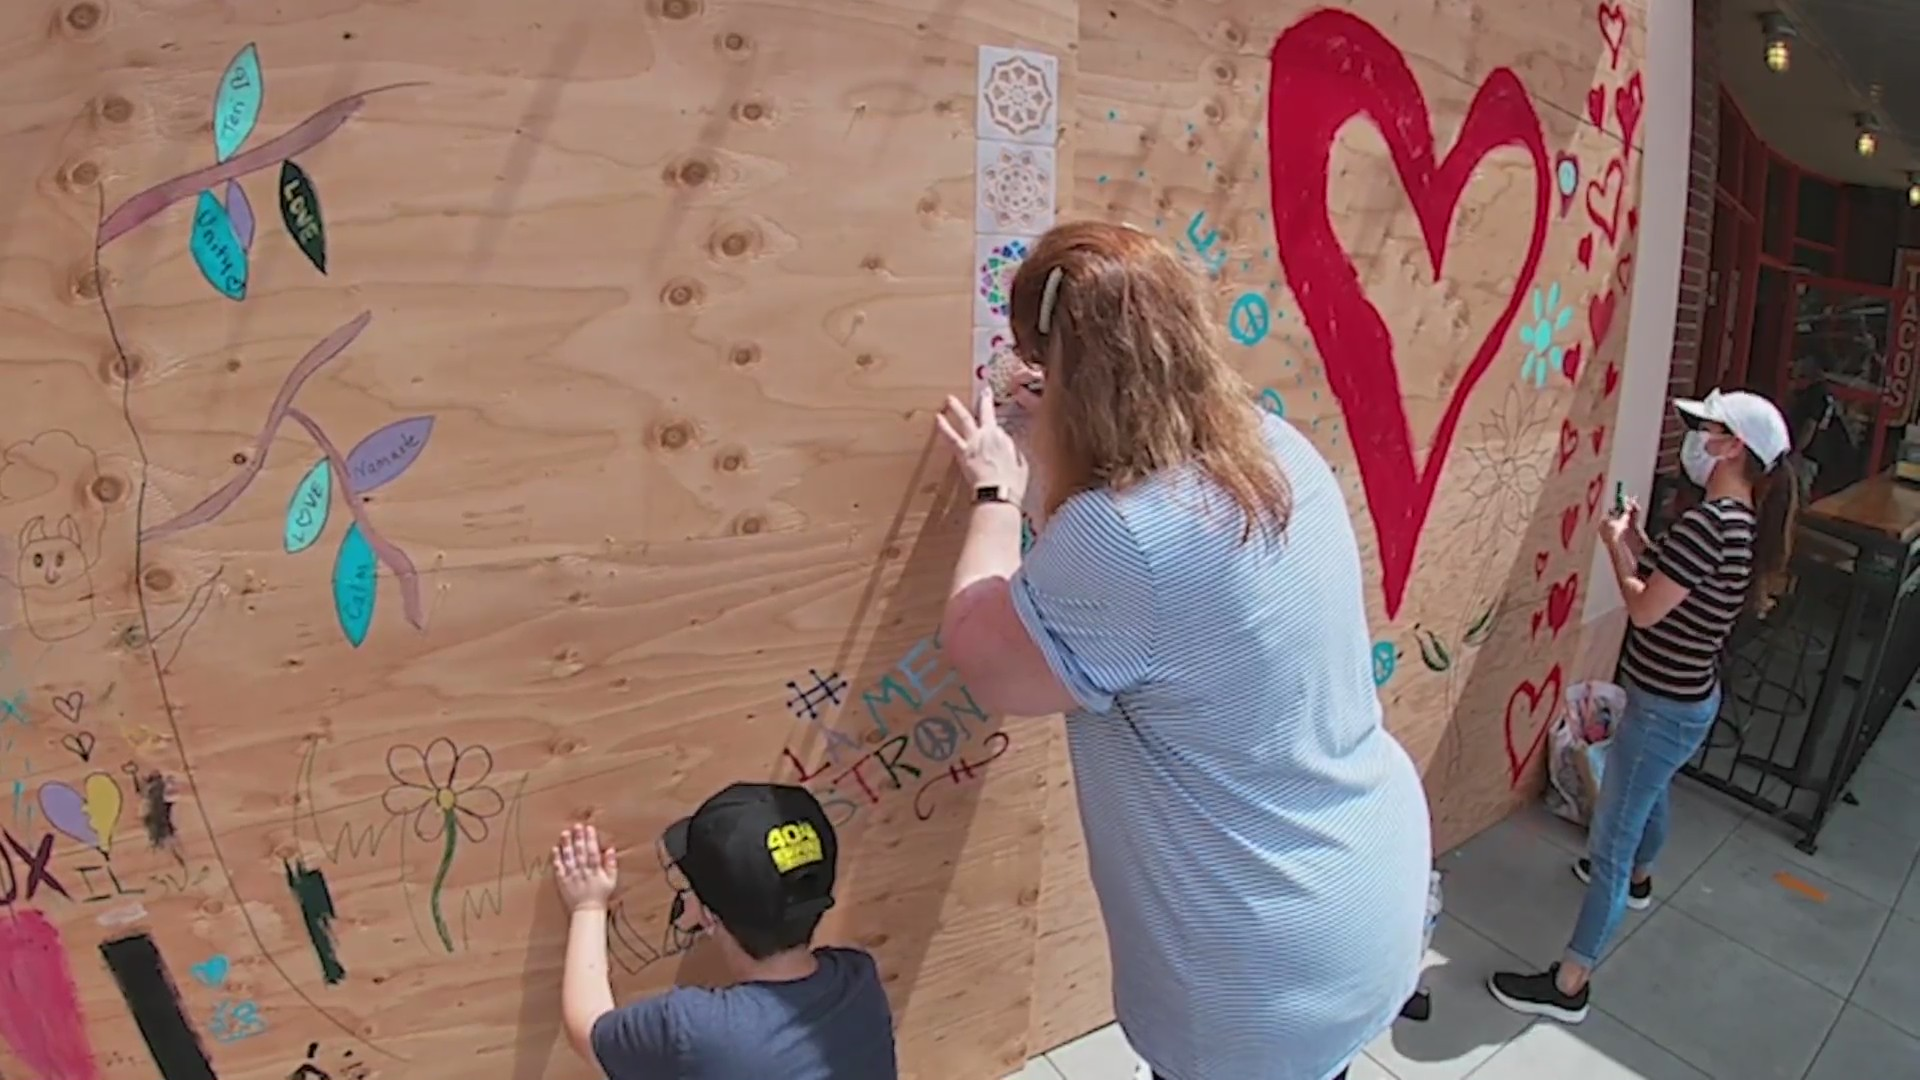 La Mesa residents decorated boarded up storefronts three days after a riot broke out in there small town.